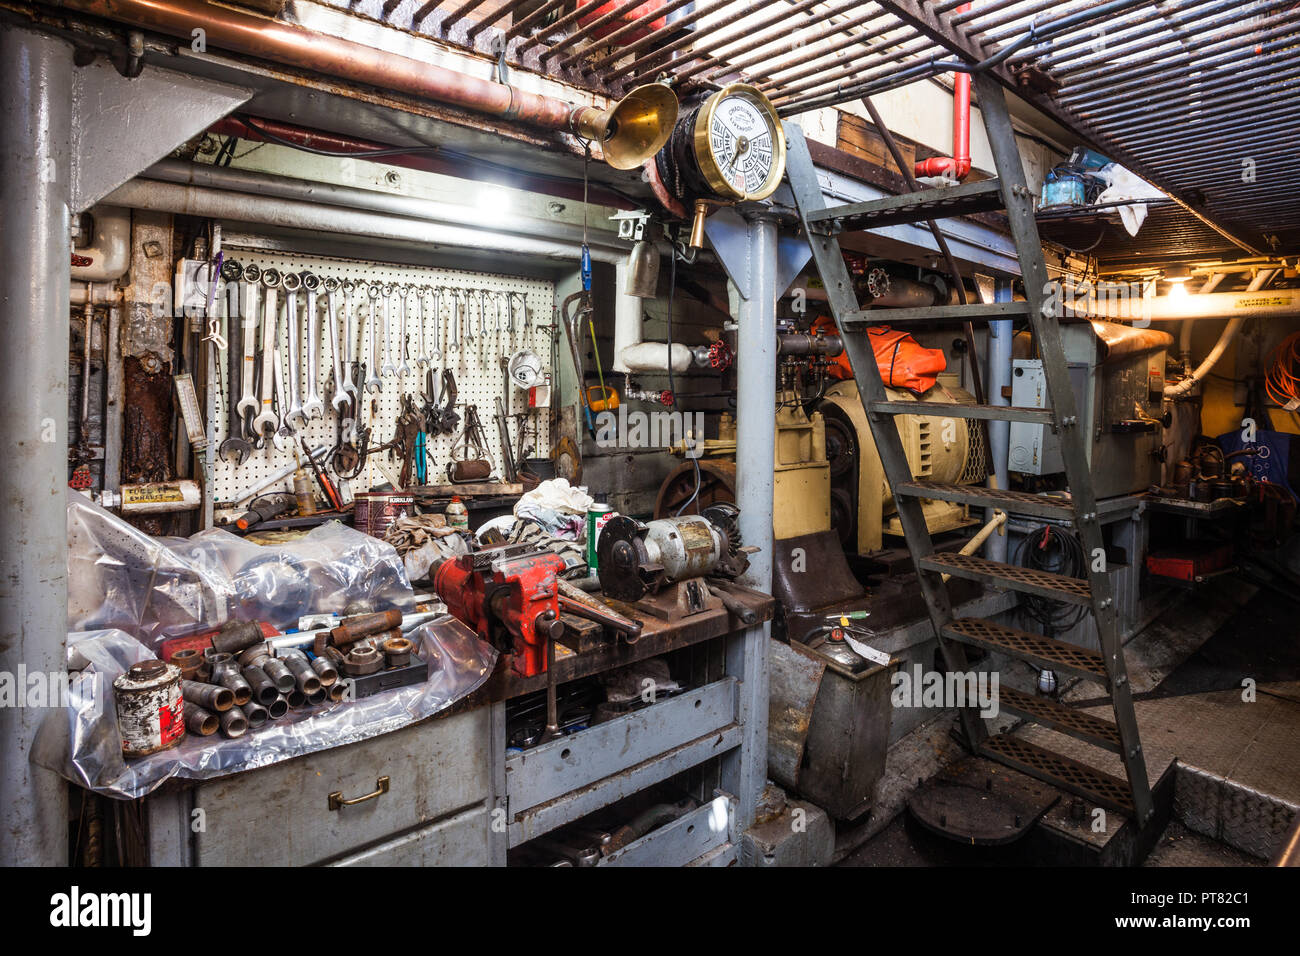 Maintenance workshop in the engine room of the steam powered